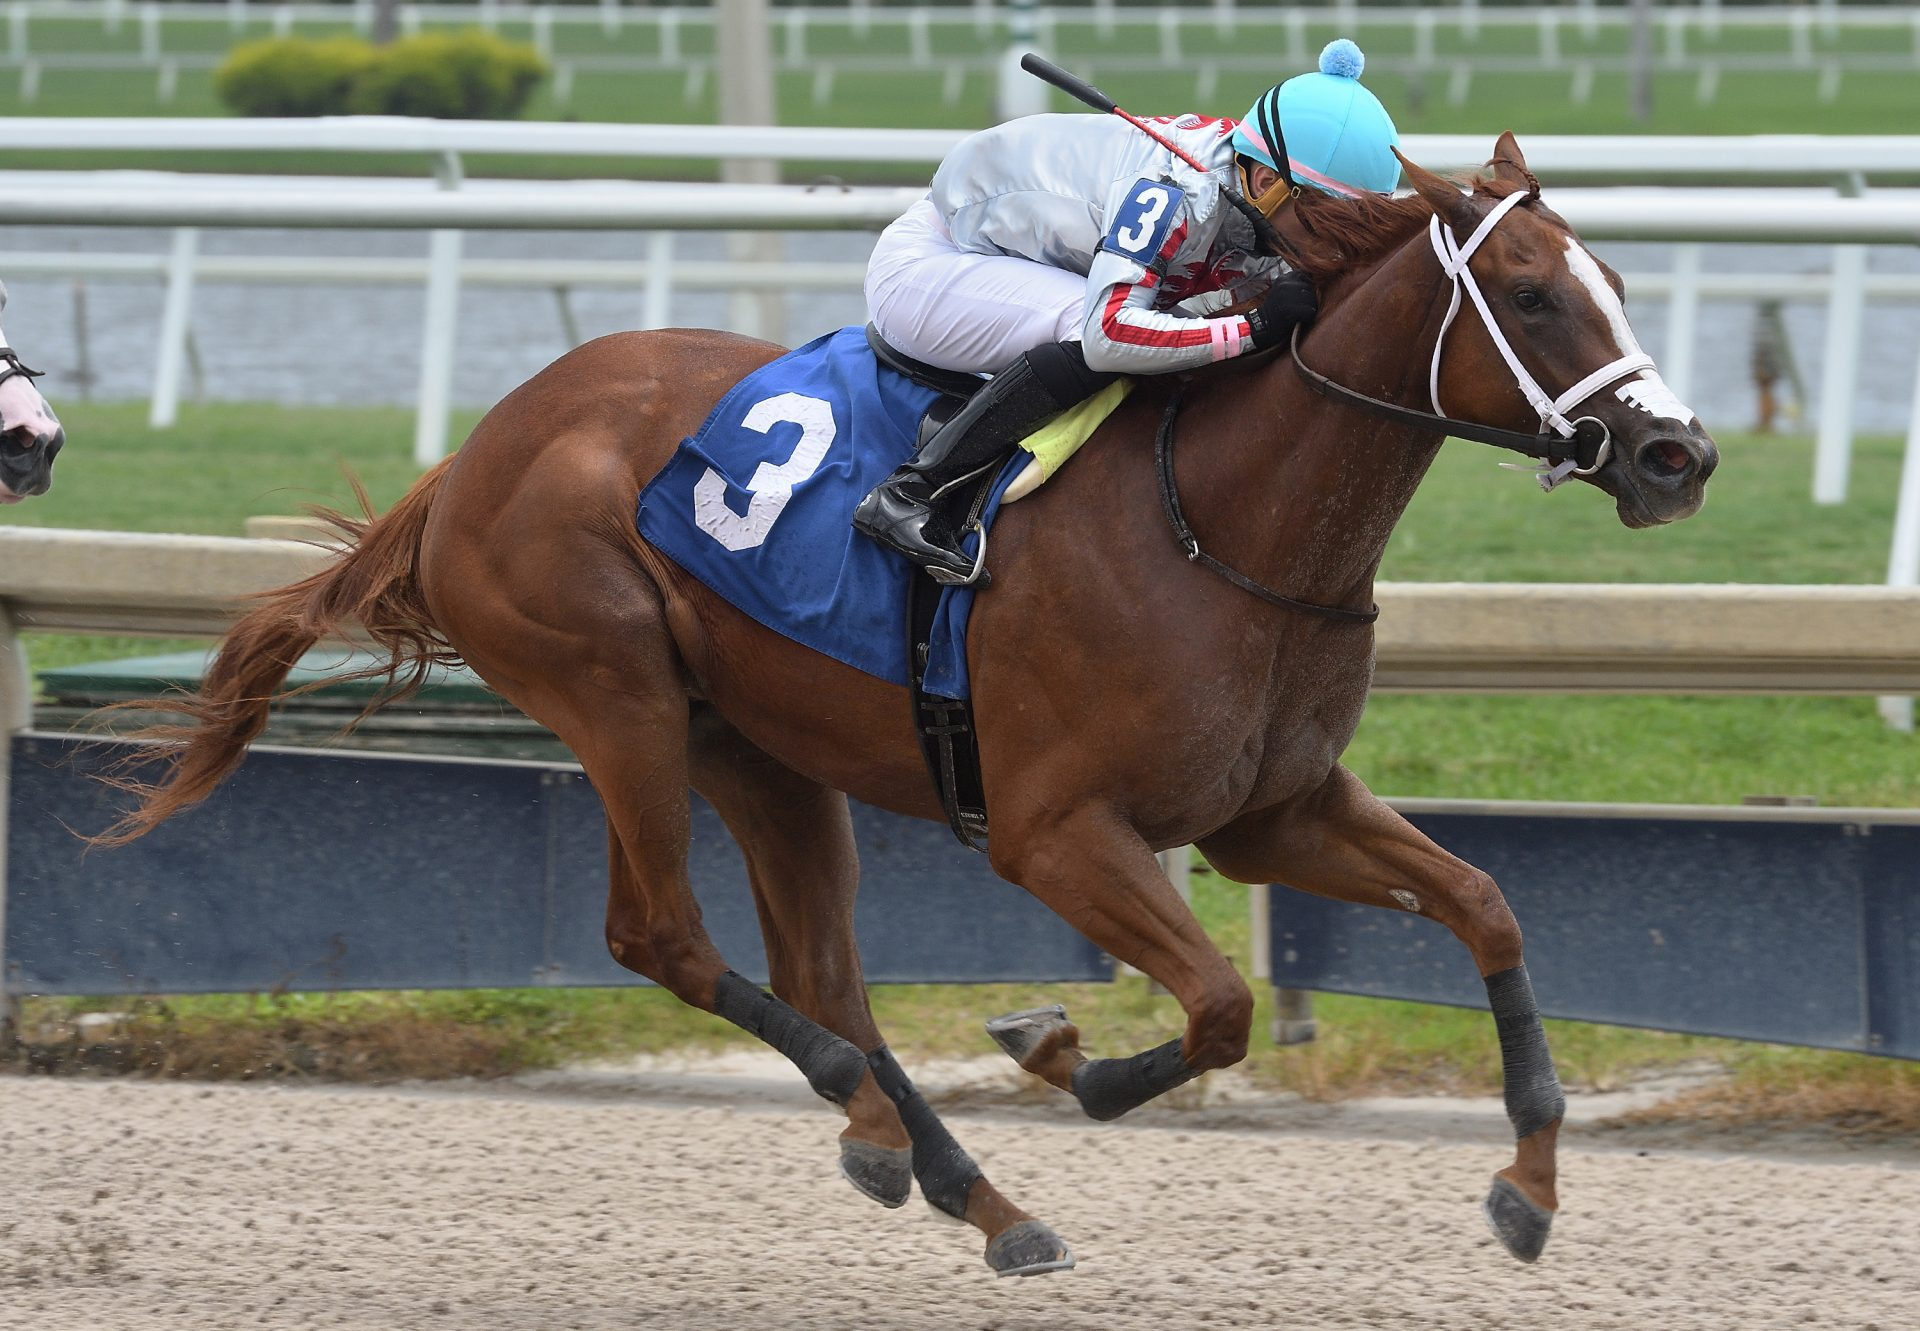 Beauty Queen (Air Force Blue) winning on debut at Gulfstream Park